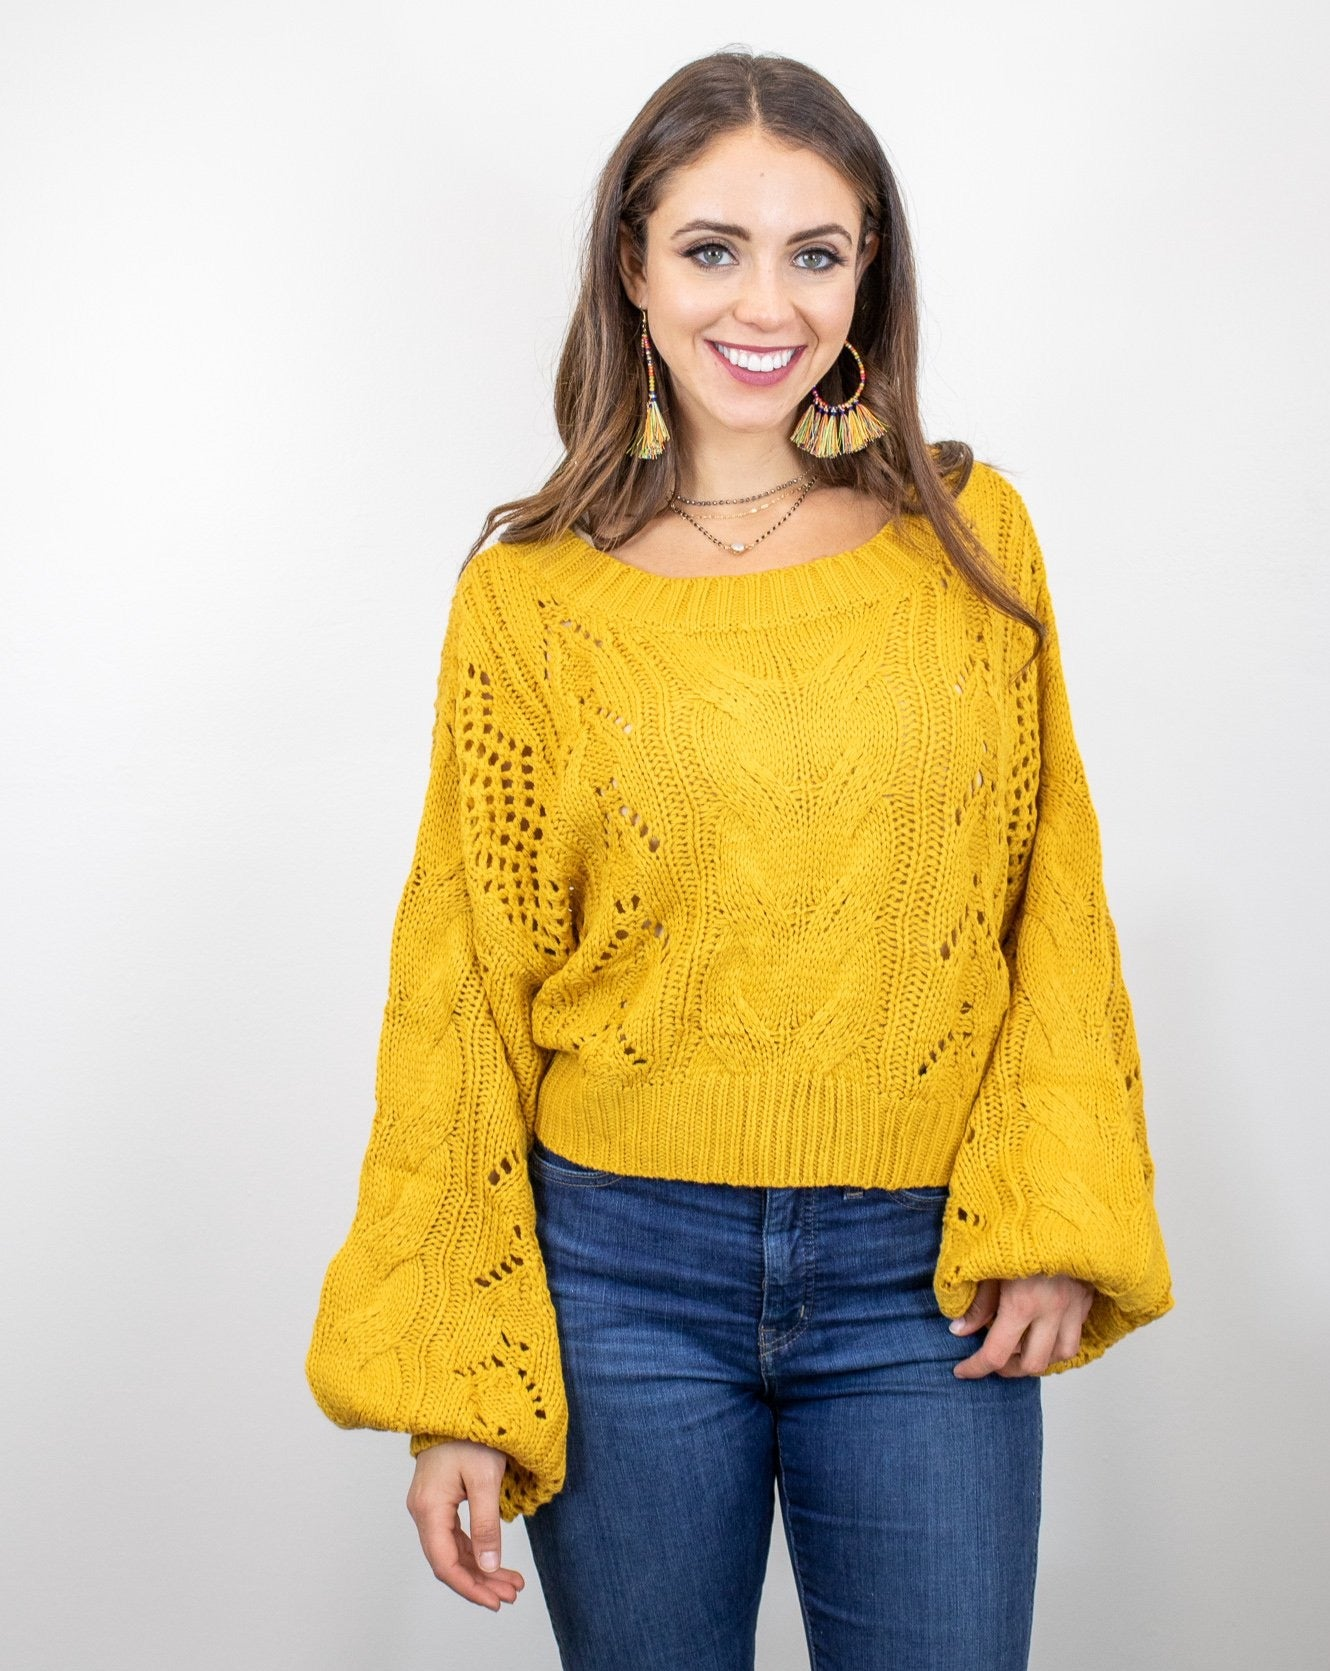 Marigold Bell Sweater